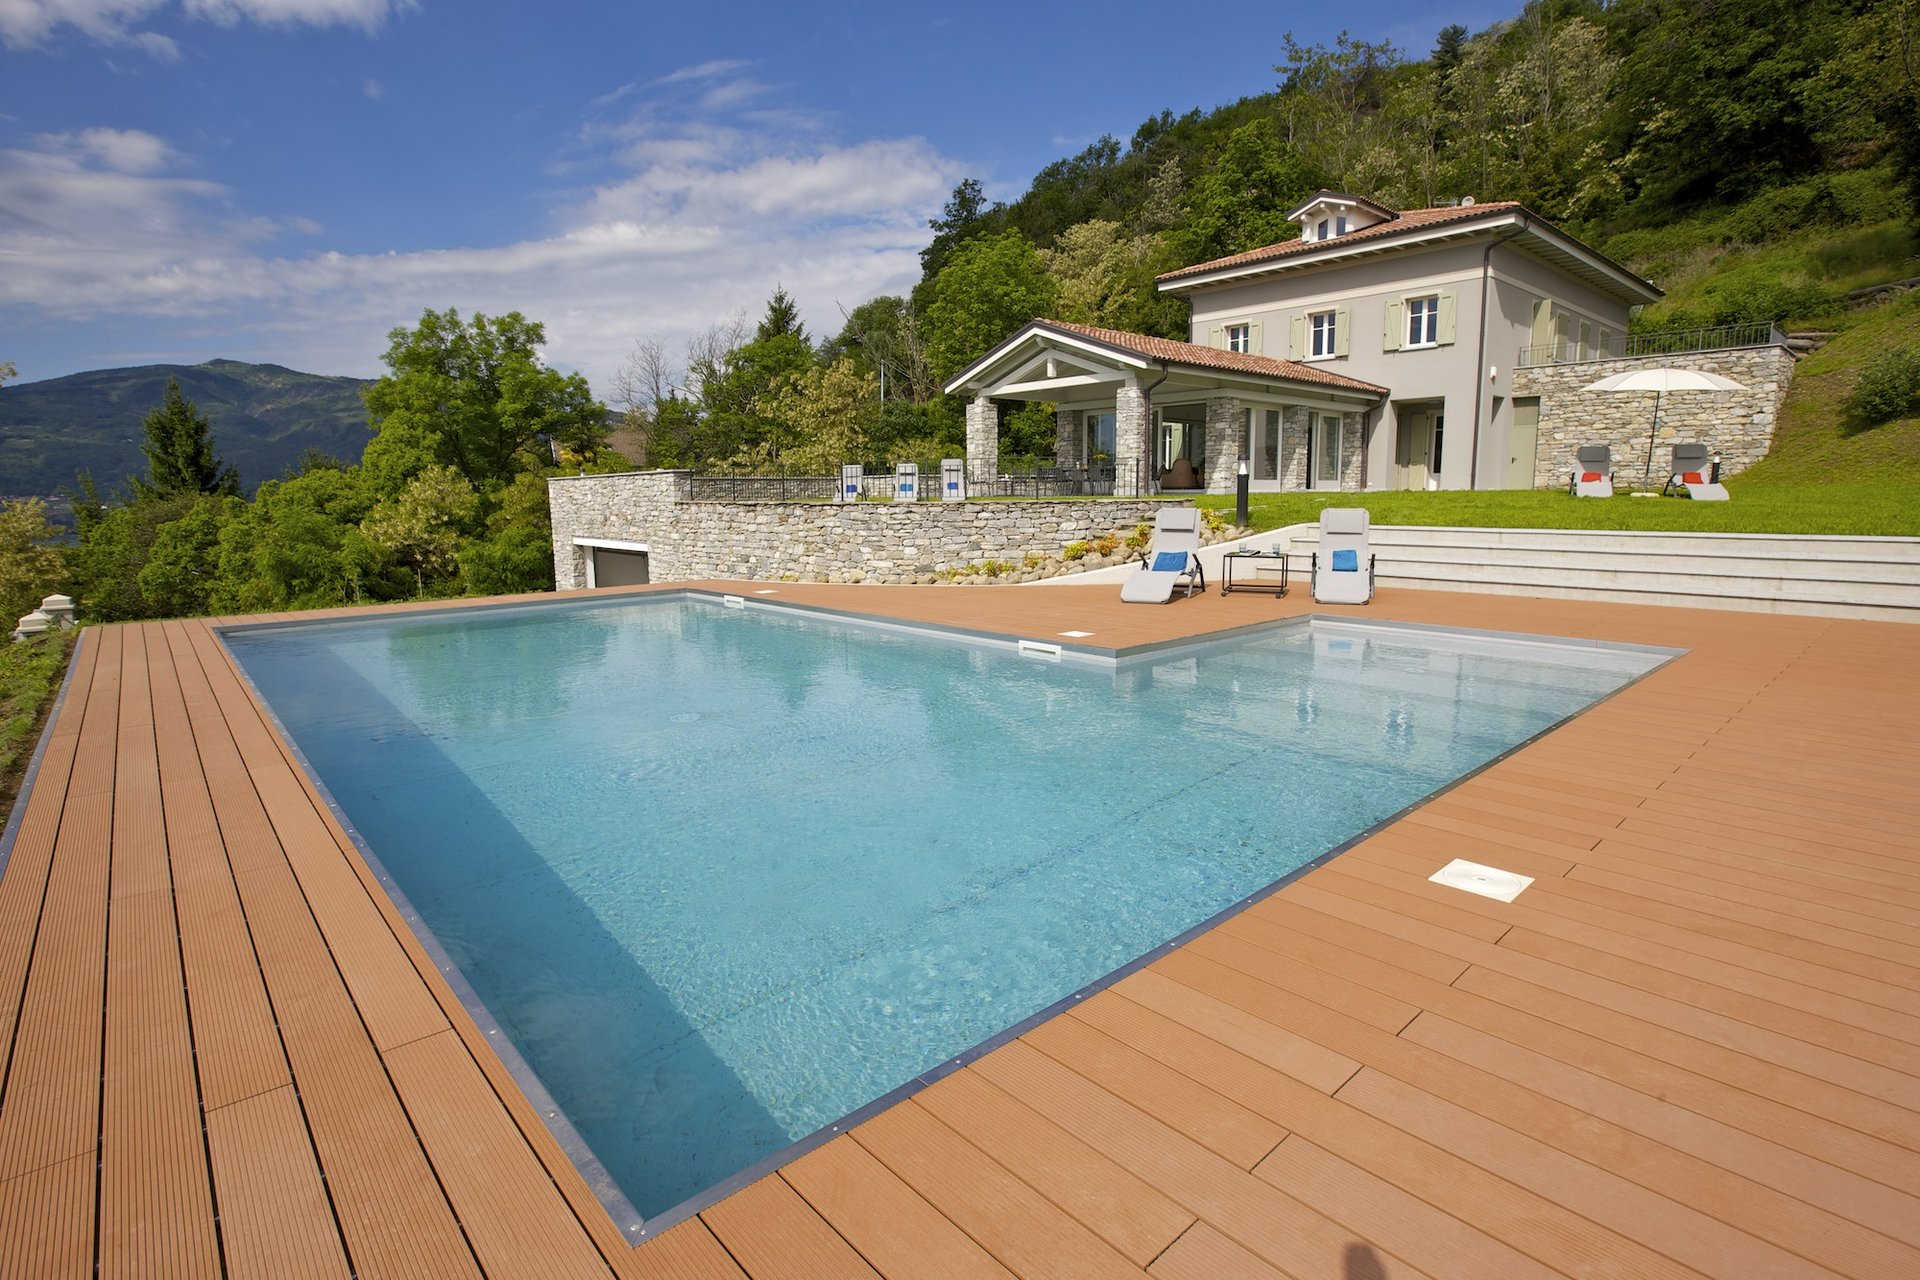 Luxury new villa for sale in Verbania - facade